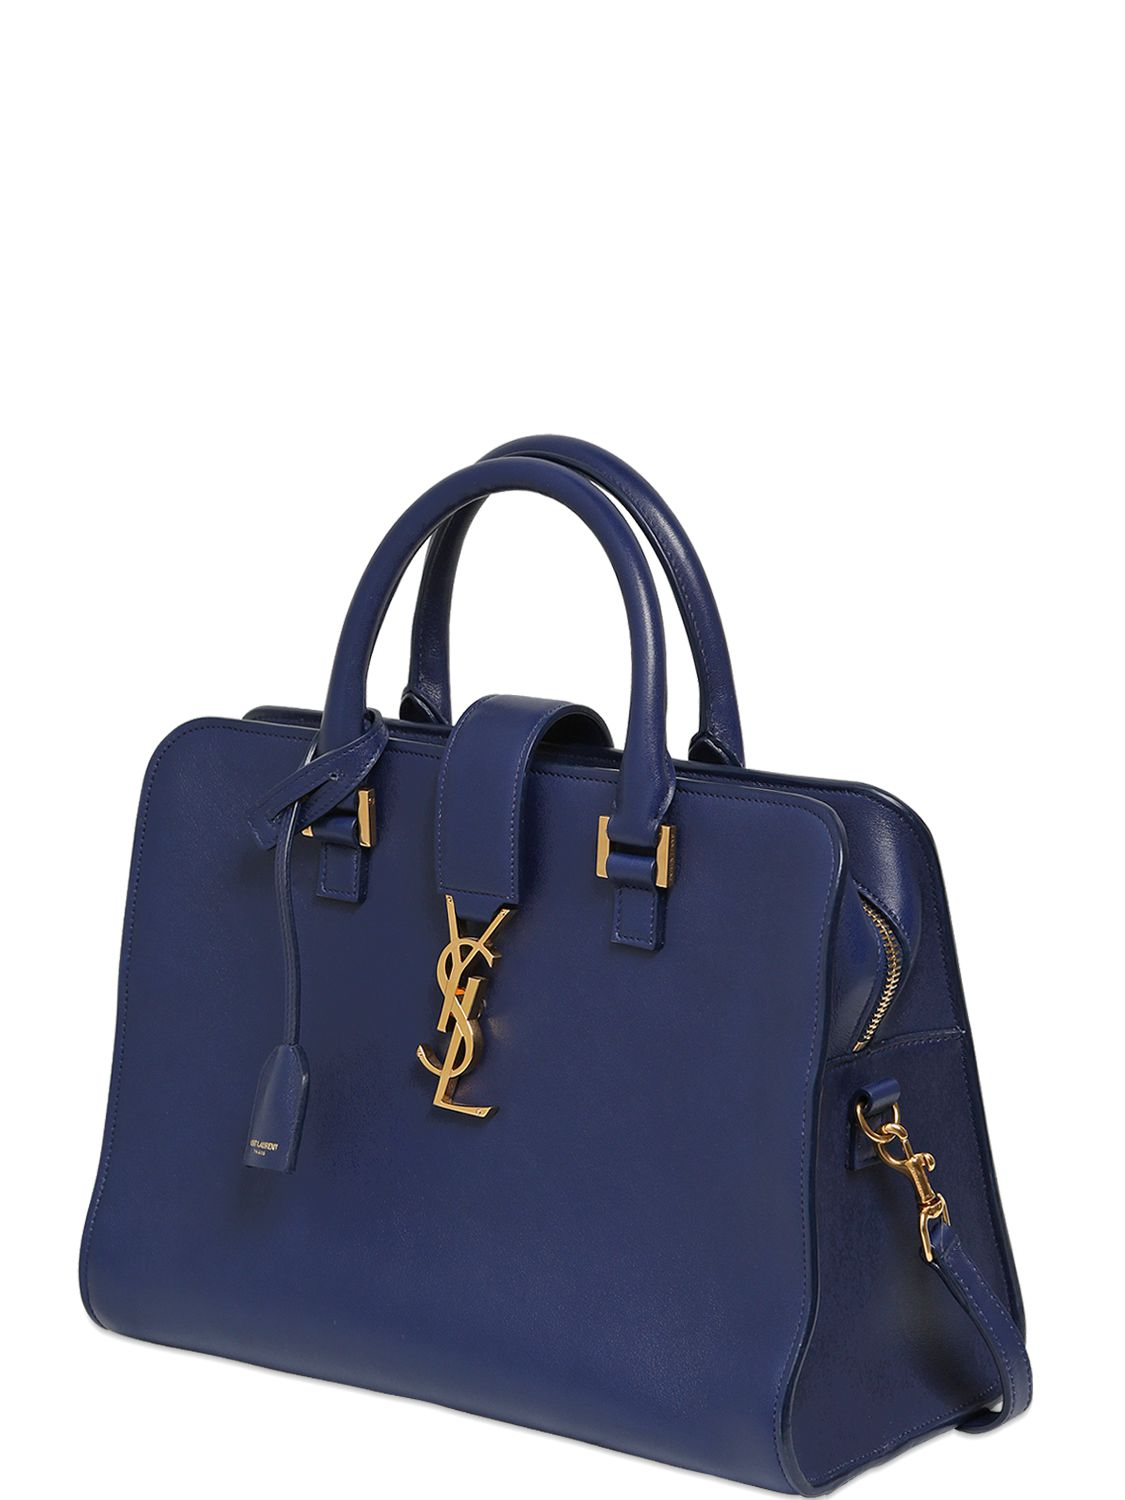 e9d5a74ee62d Lyst - Saint Laurent Baby Cabas Monogram Bag in Blue